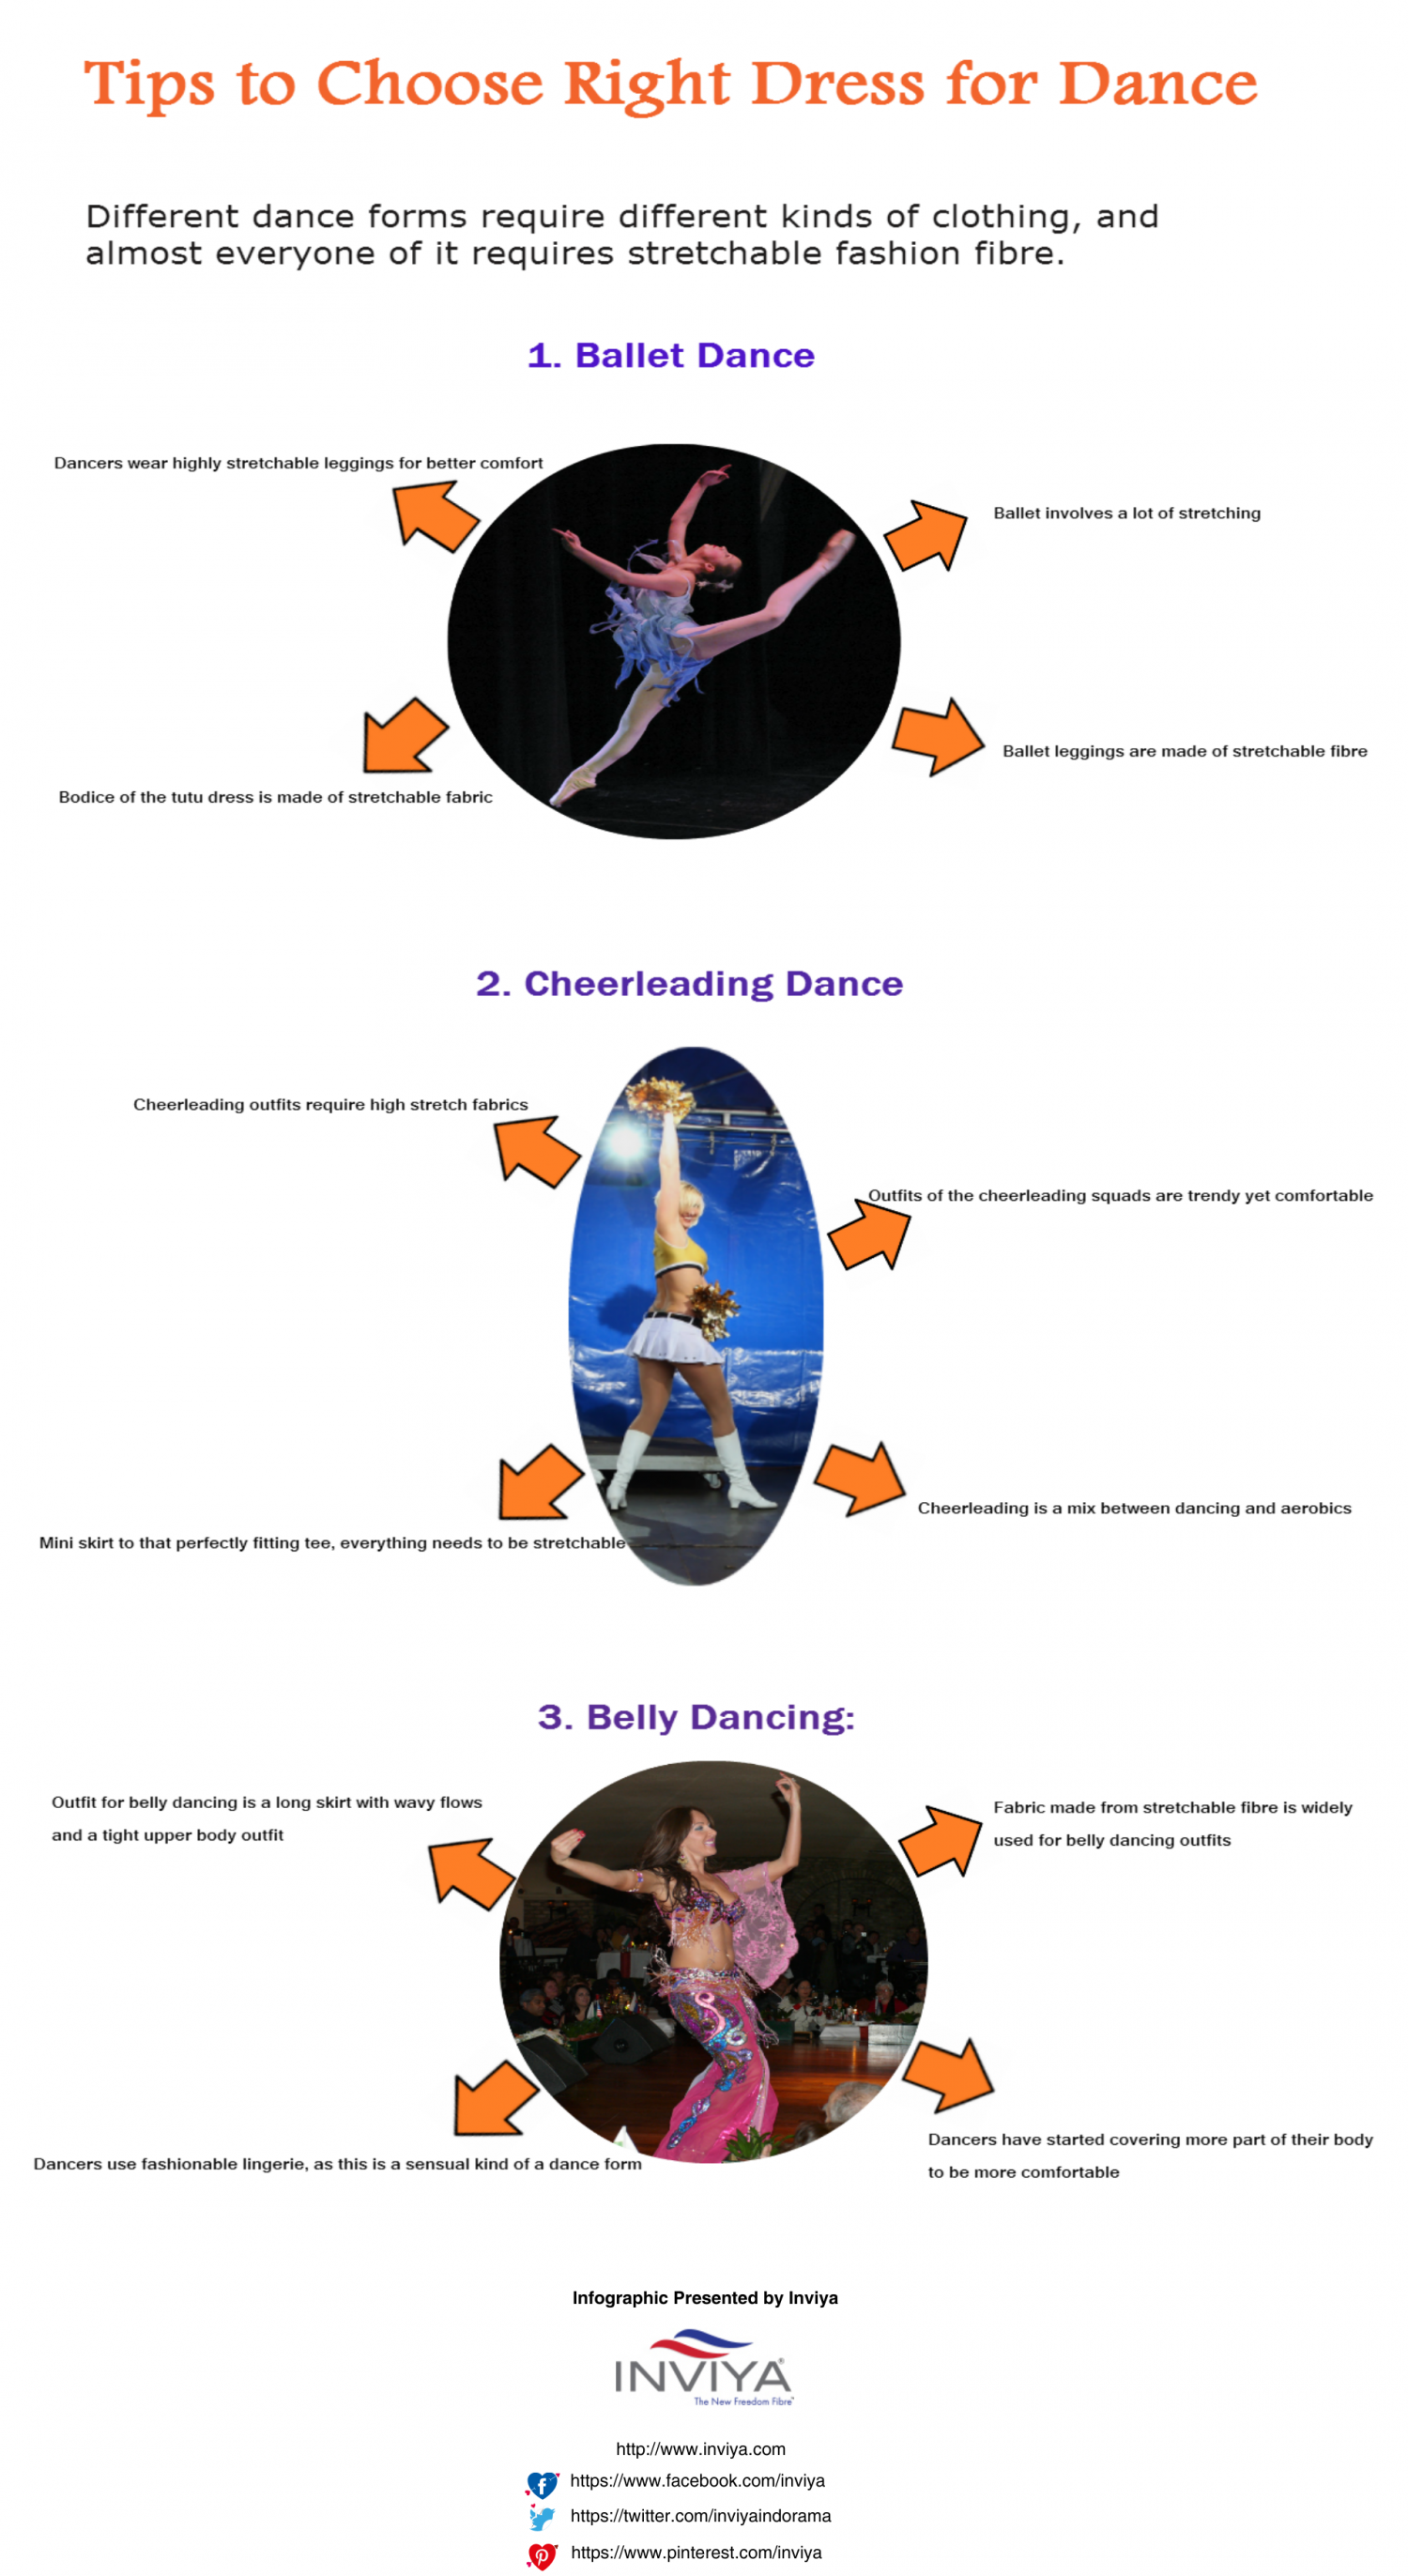 Tips to Choose Right Dress for Dance | Visual.ly